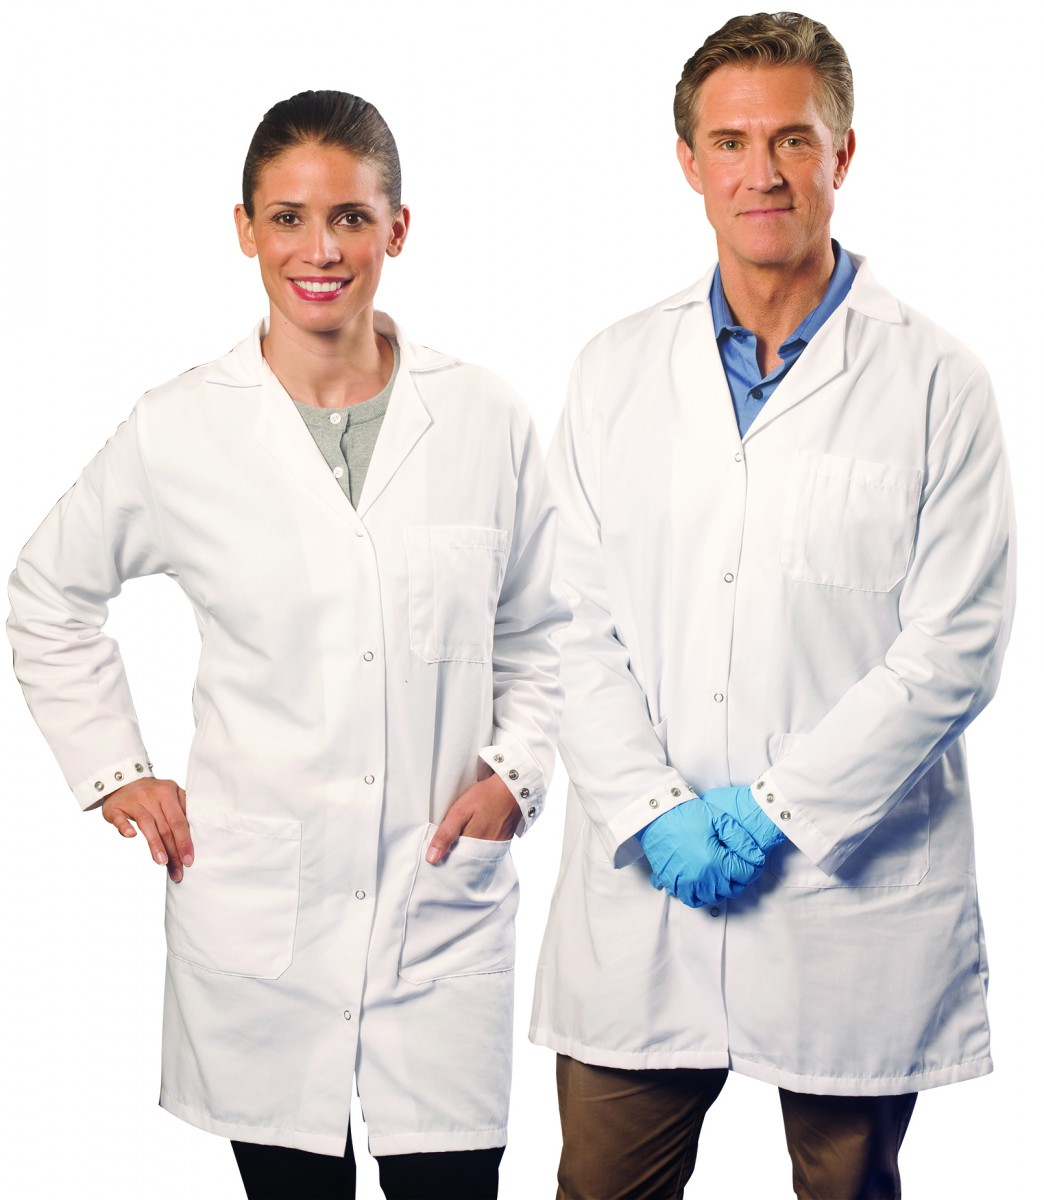 A man and a woman wearing white lab coats.